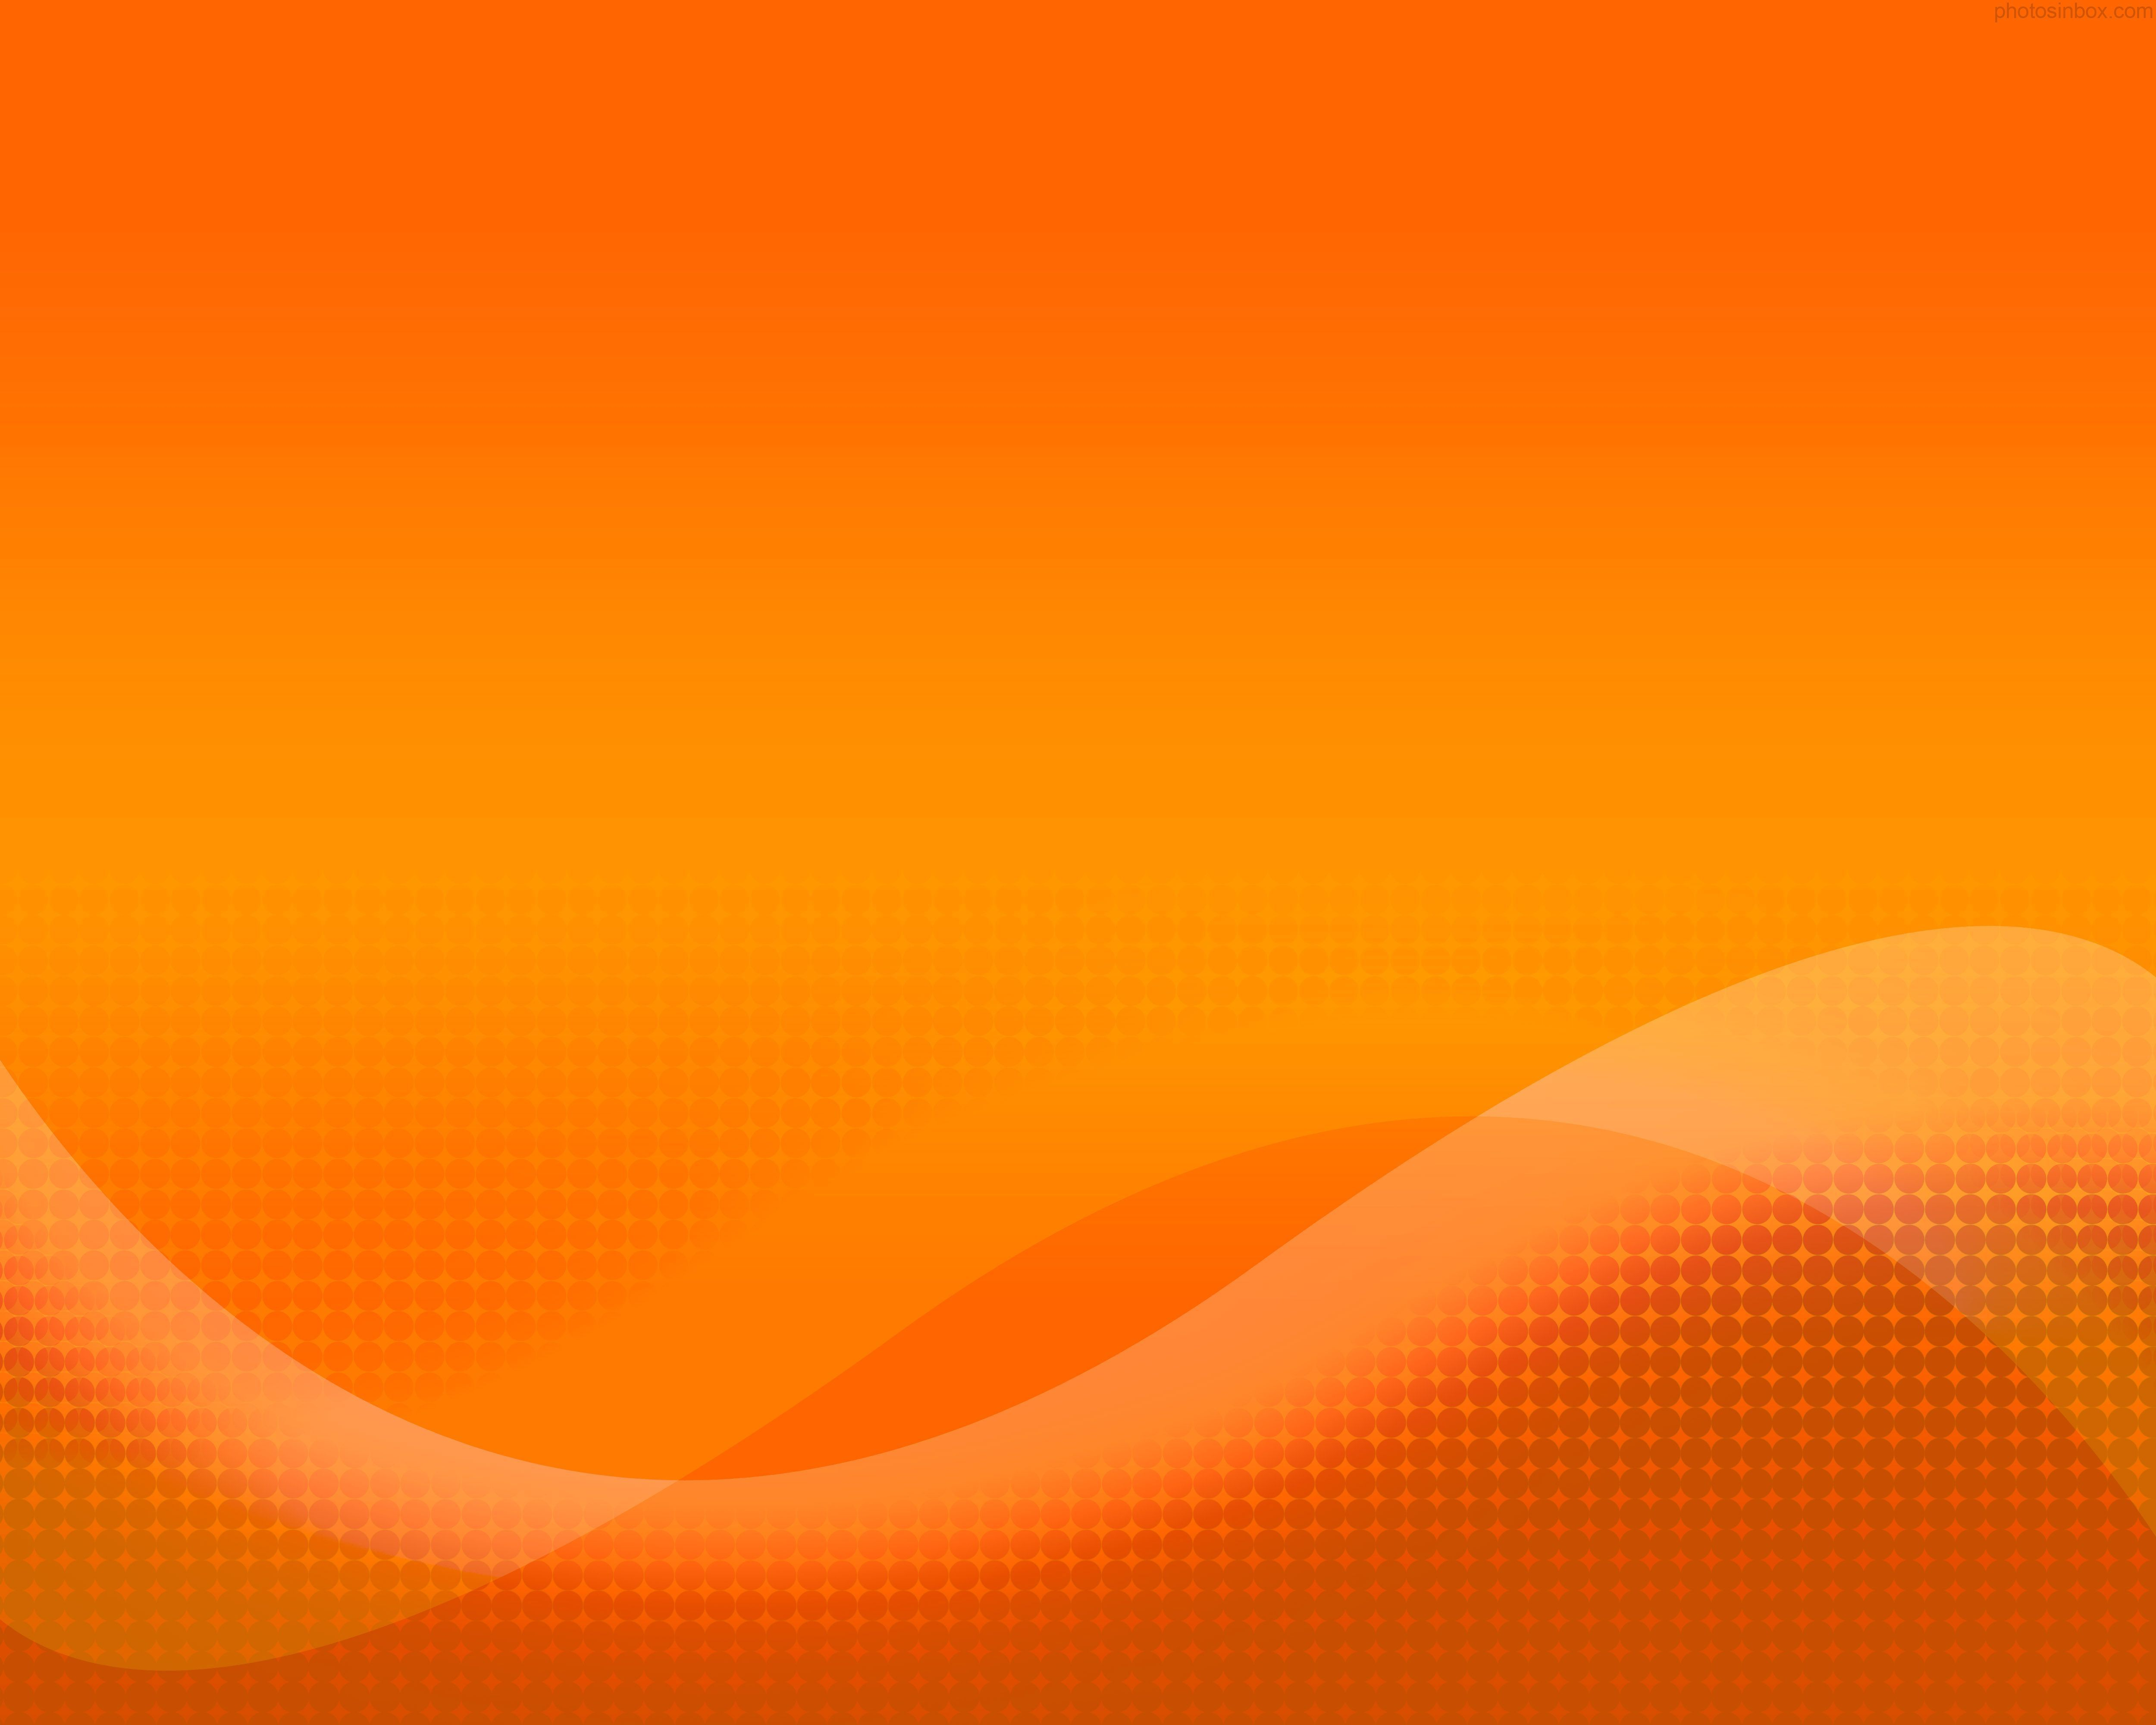 Abstract Orange Backgrounds Psdgraphics Hd Wallpapers